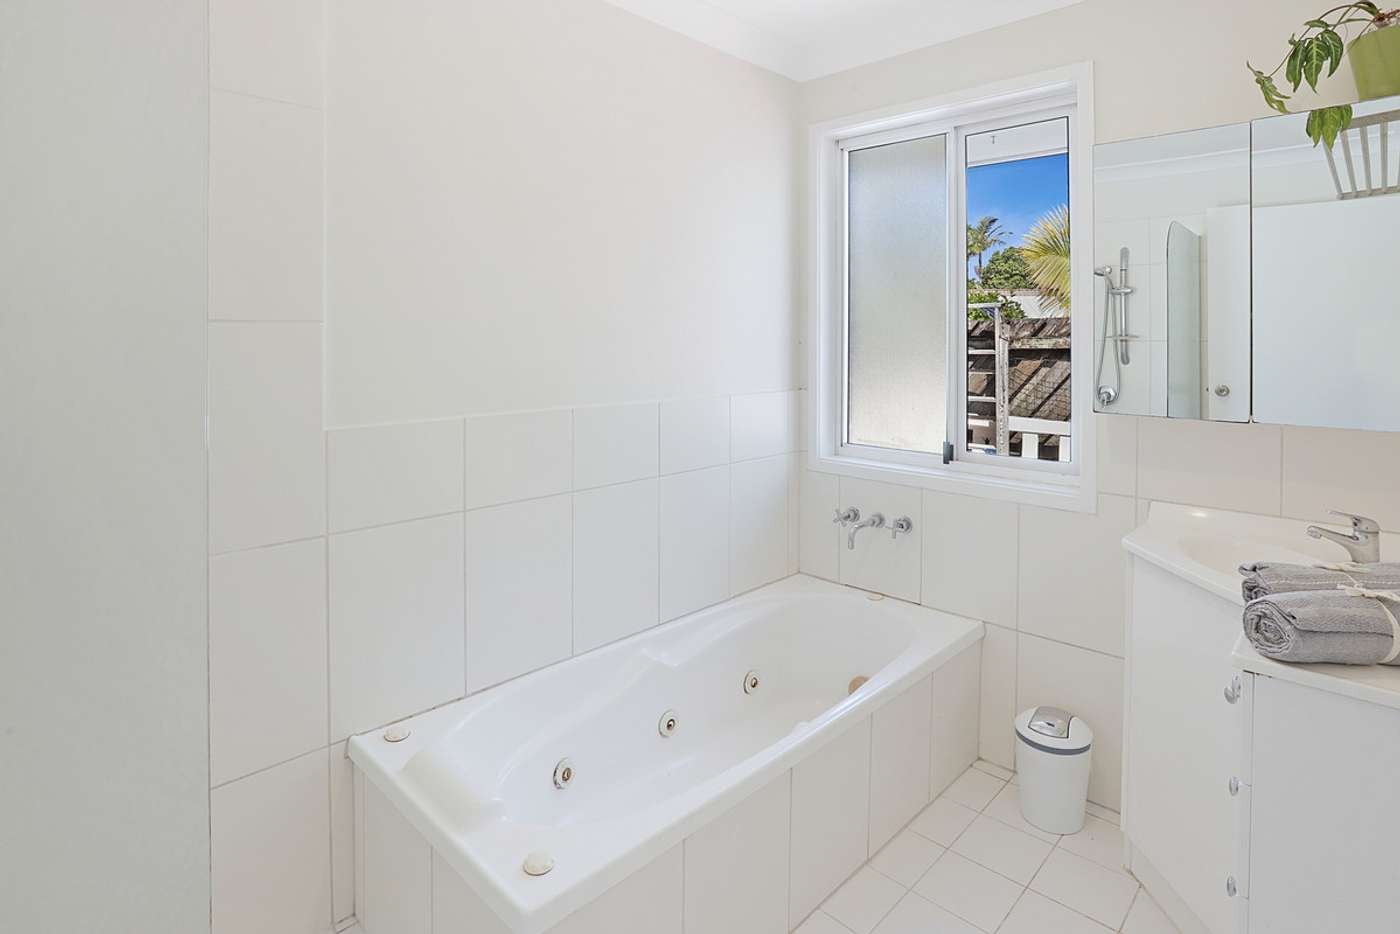 Sixth view of Homely house listing, 25 Riverlea Waters Drive, Nerang QLD 4211